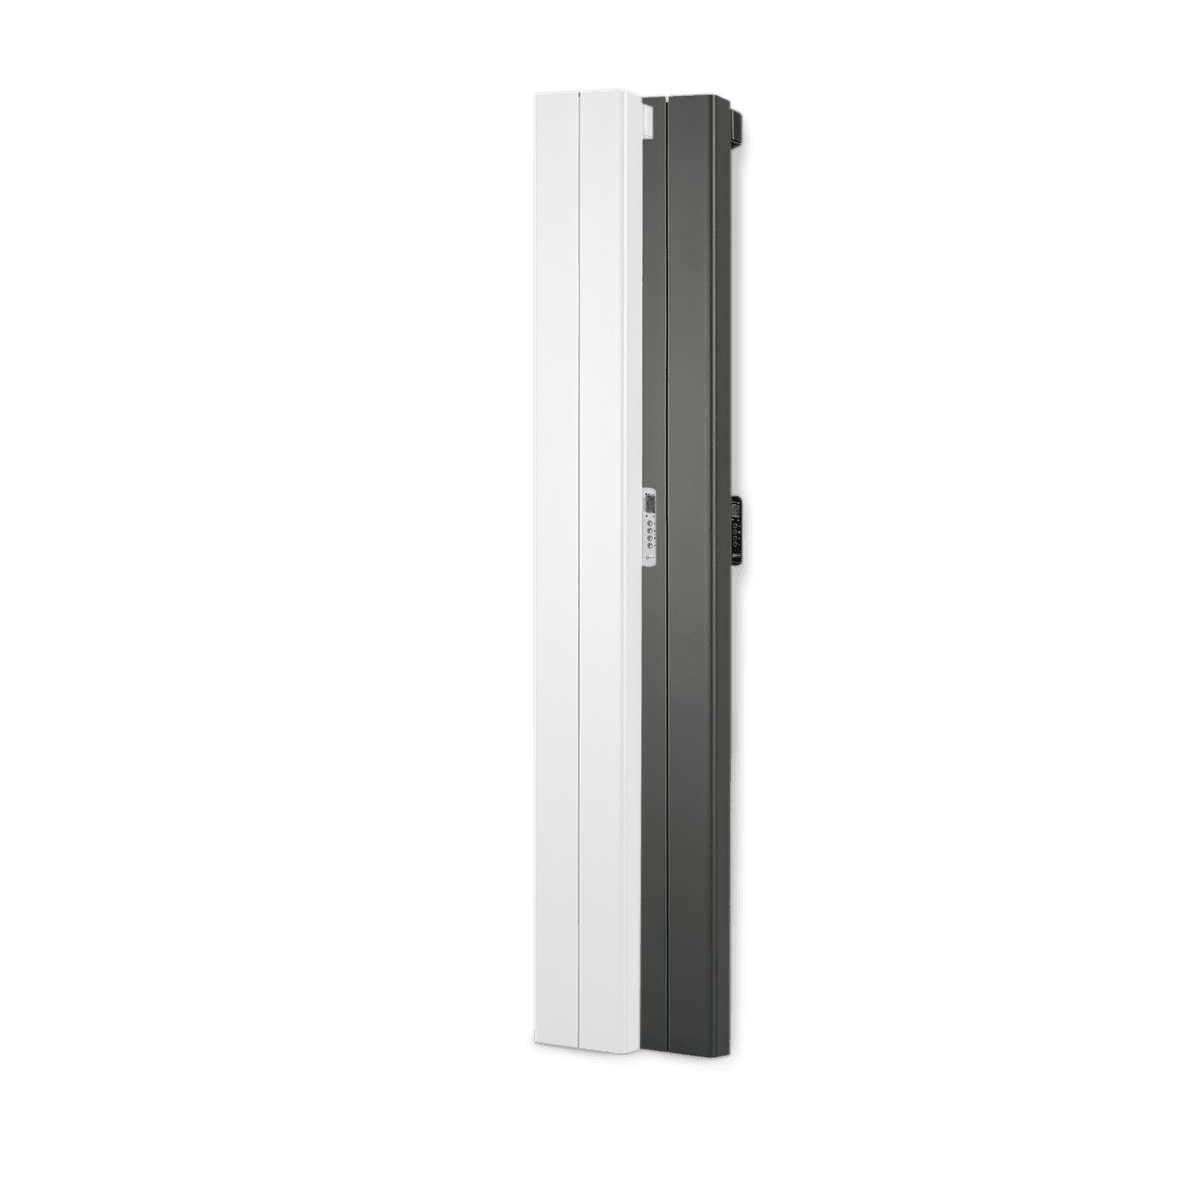 Rointe Palaos tall vertical radiators in white and black with 2 heating elements